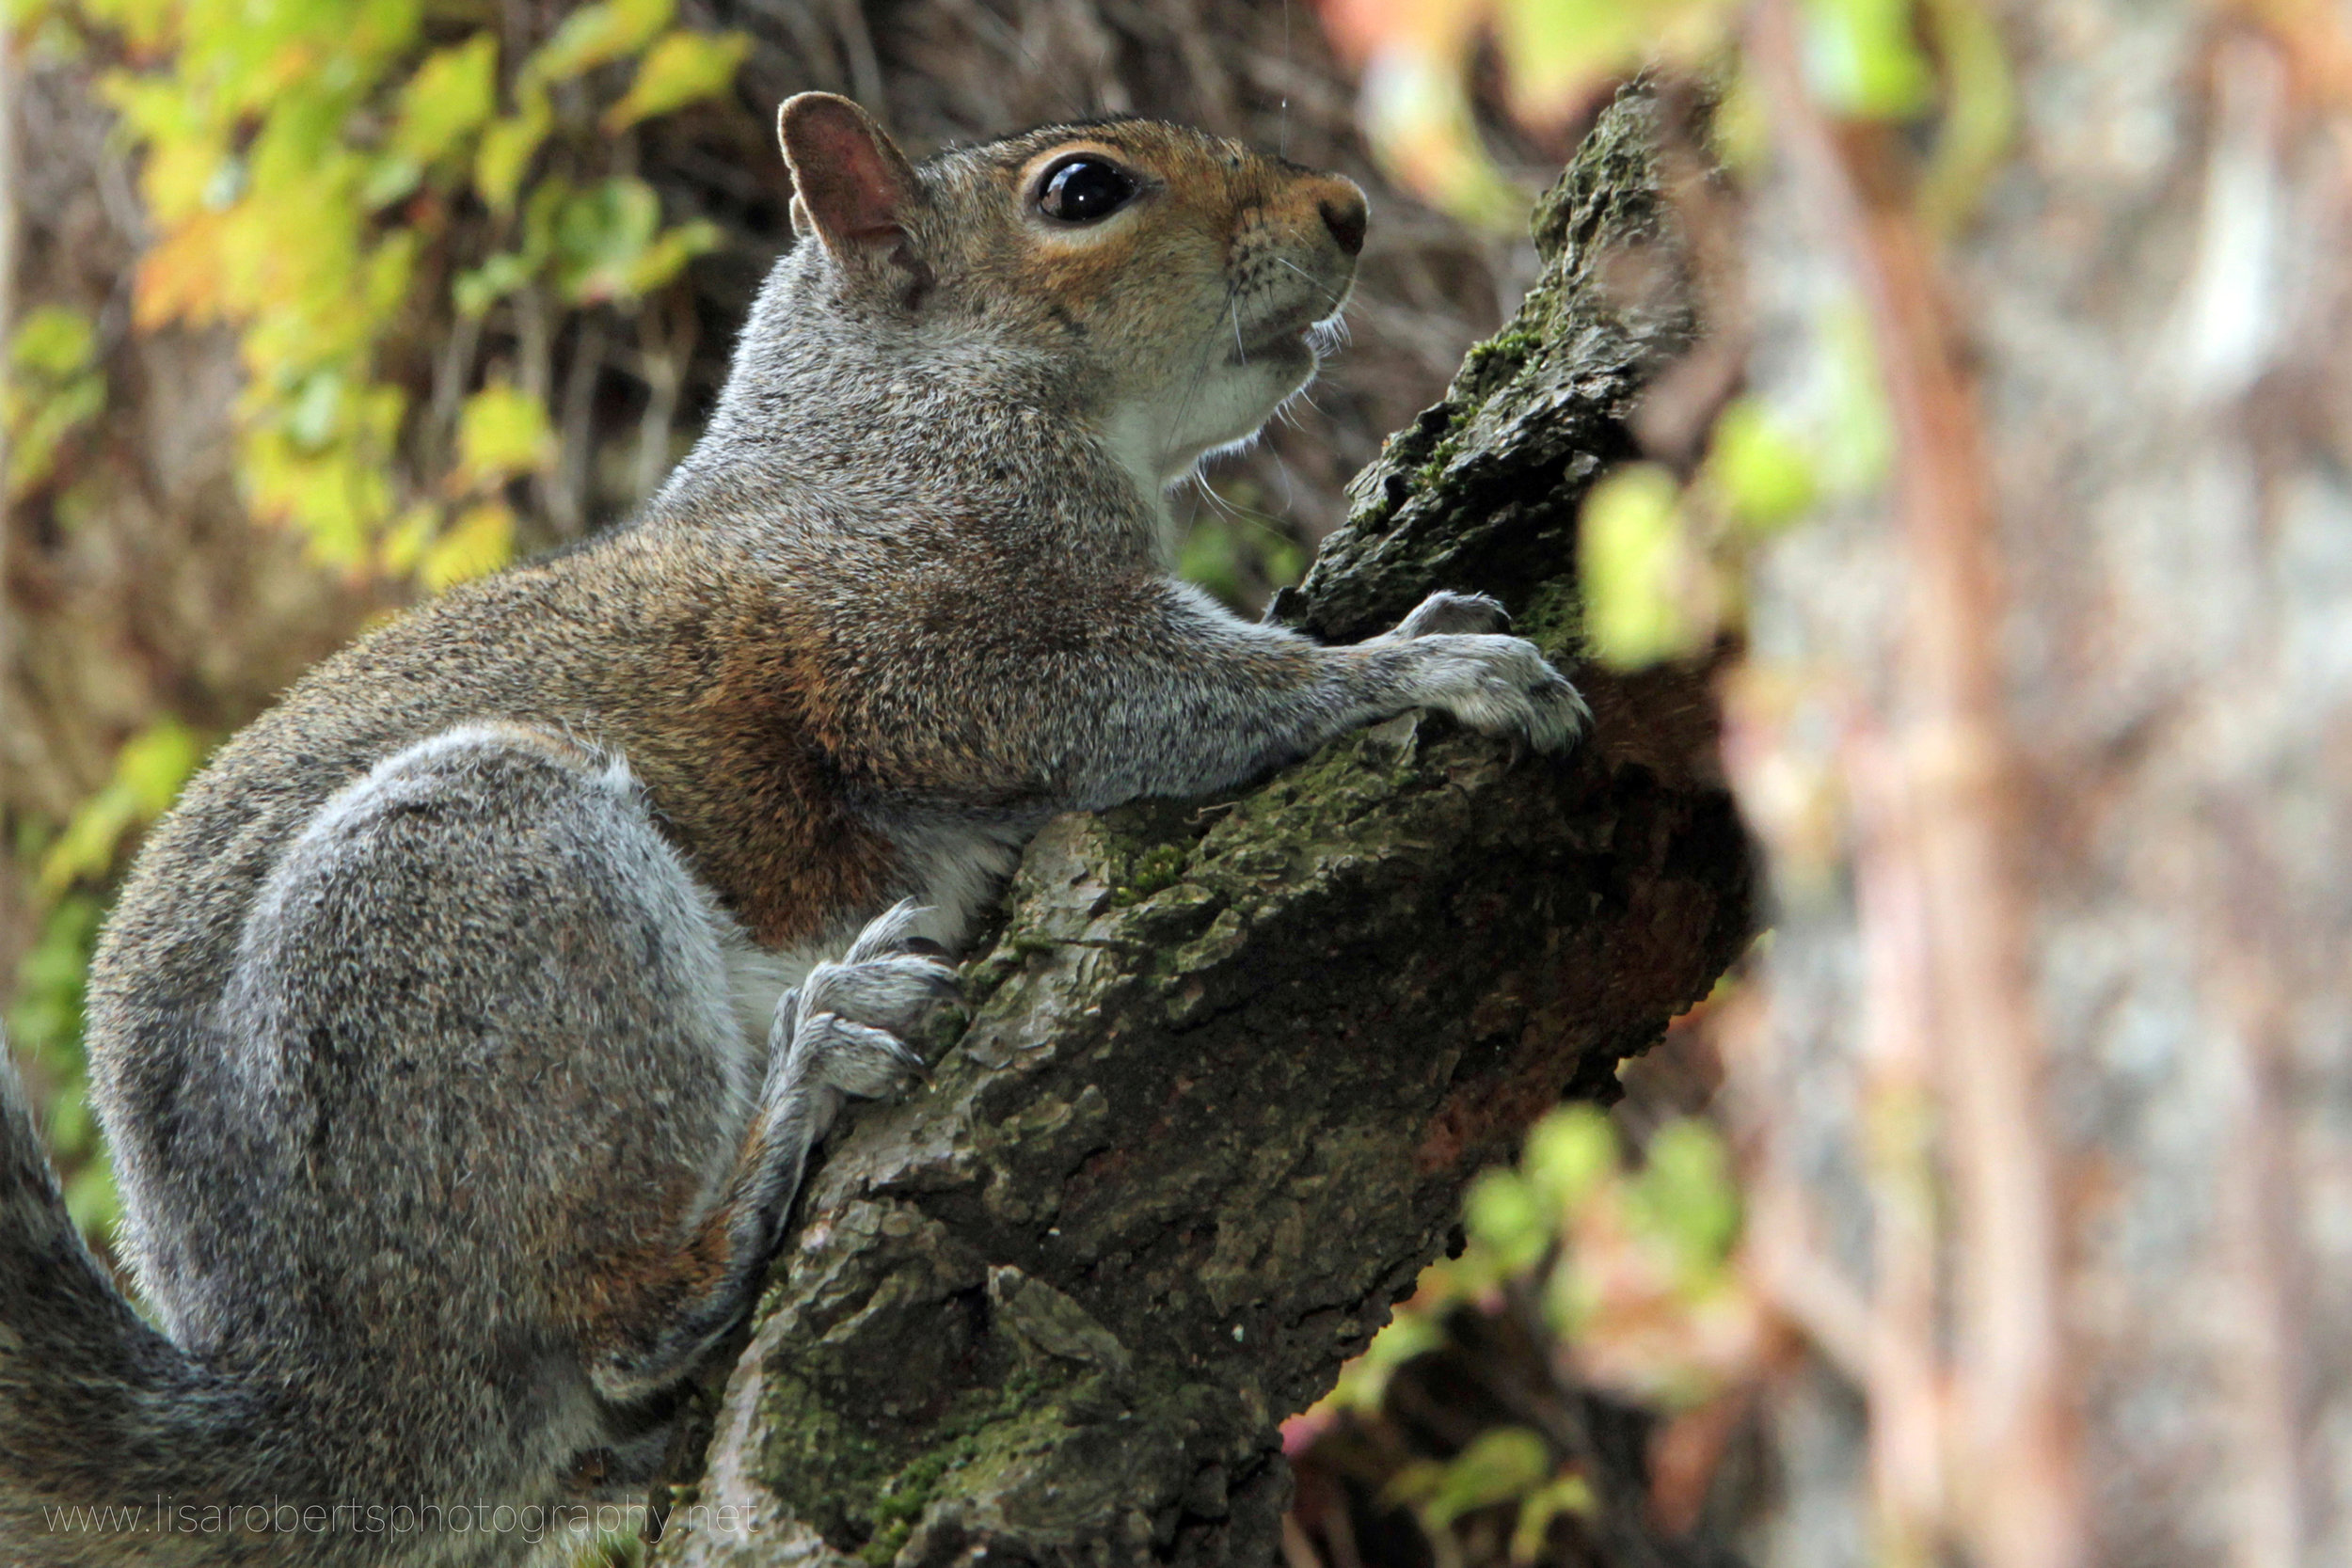 Grey Squirrel on Ivy branch